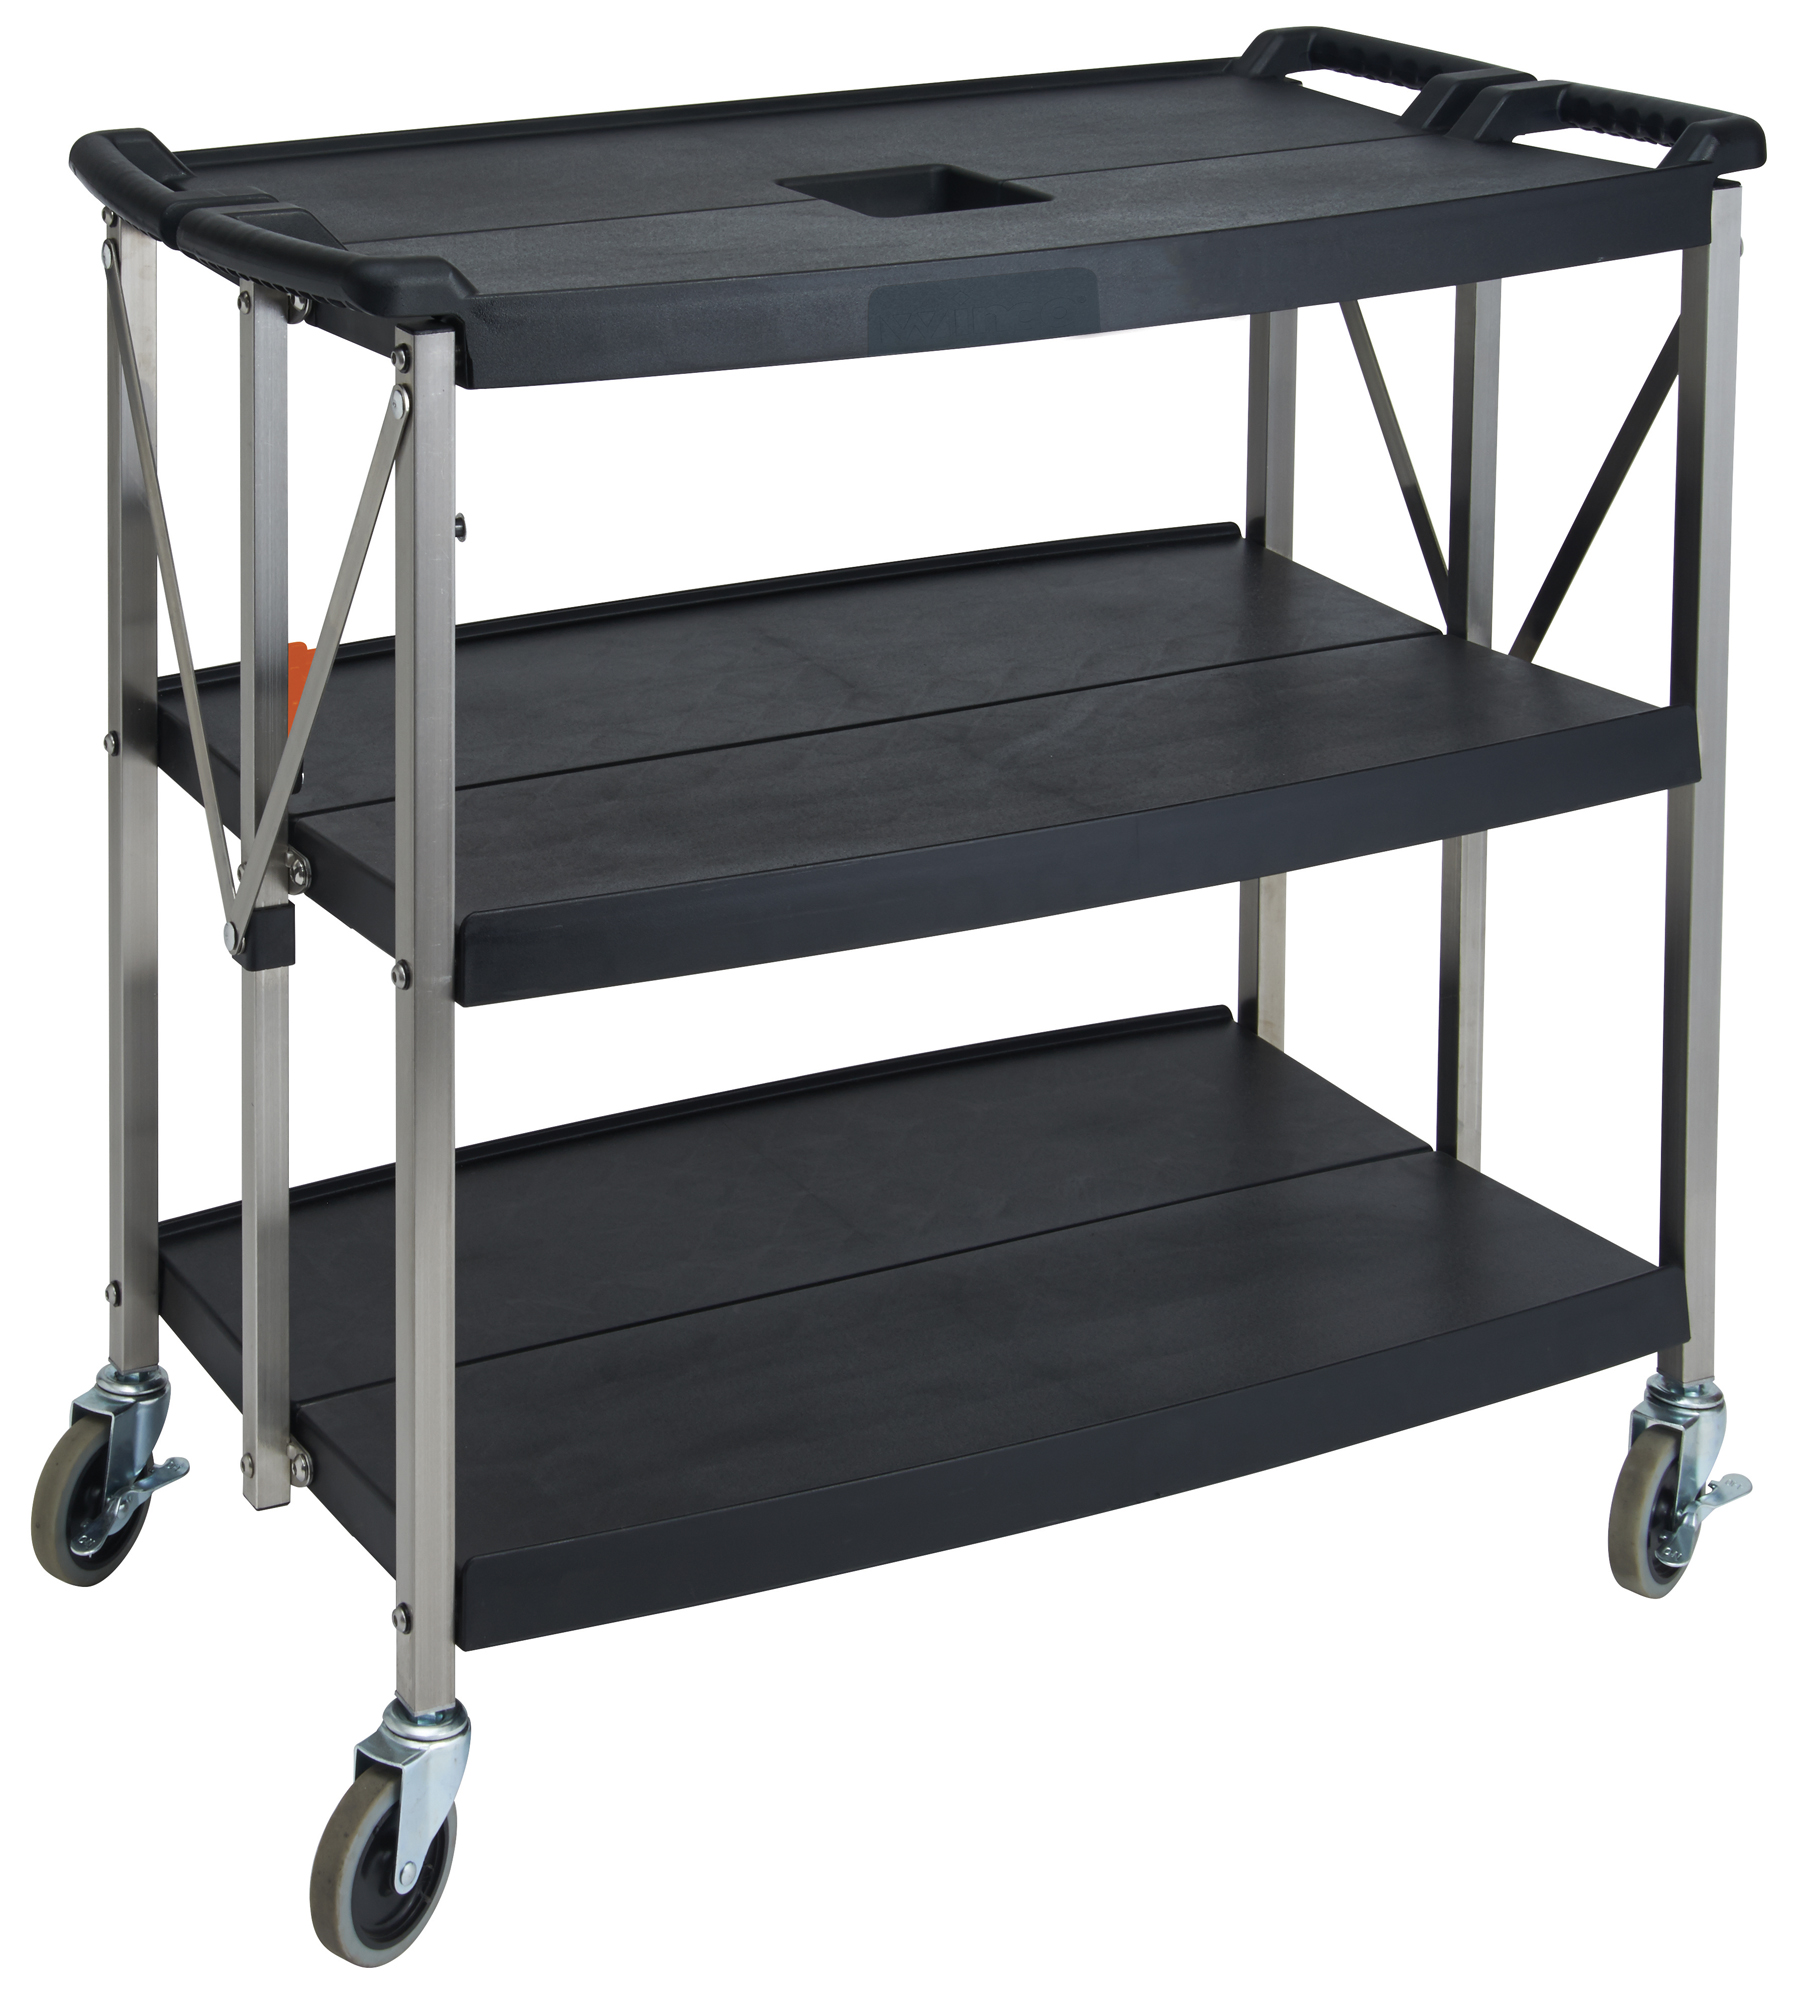 Winco UCF-3820K utility & bus carts